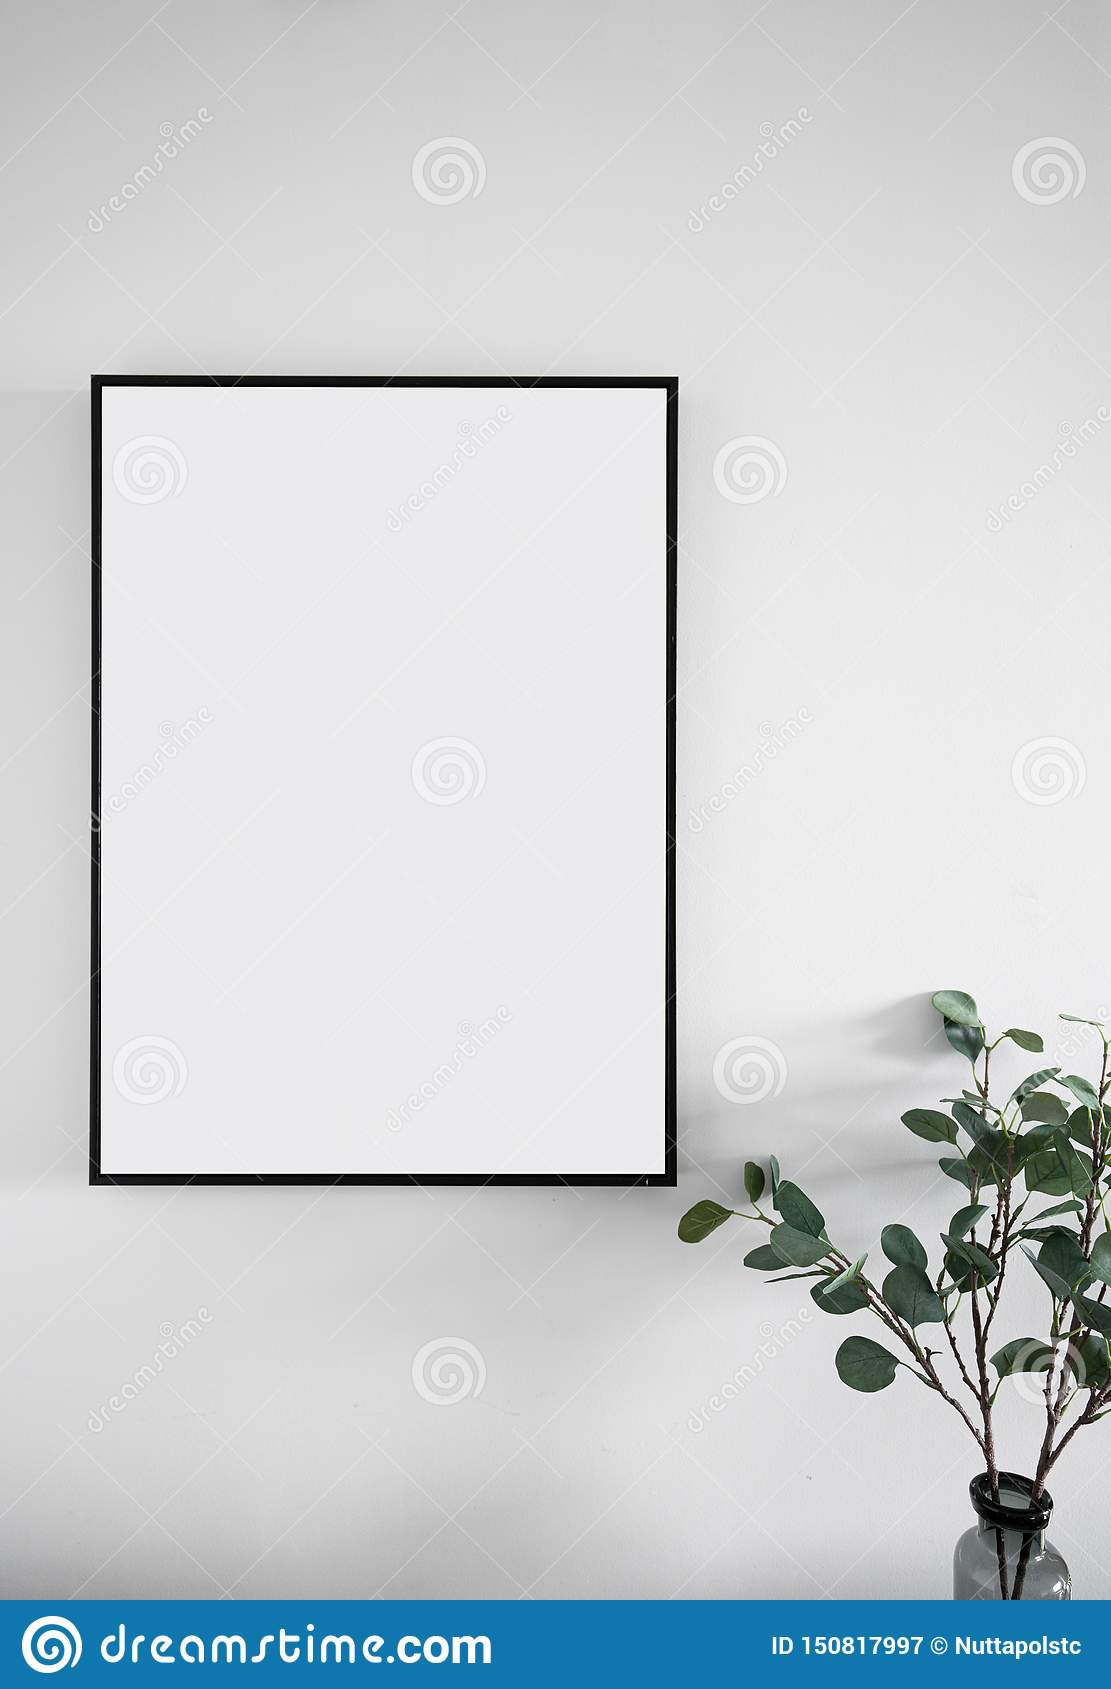 Composition of empty black wooden frame install on white painted wall with artificial plant on the corner / interior design / isol